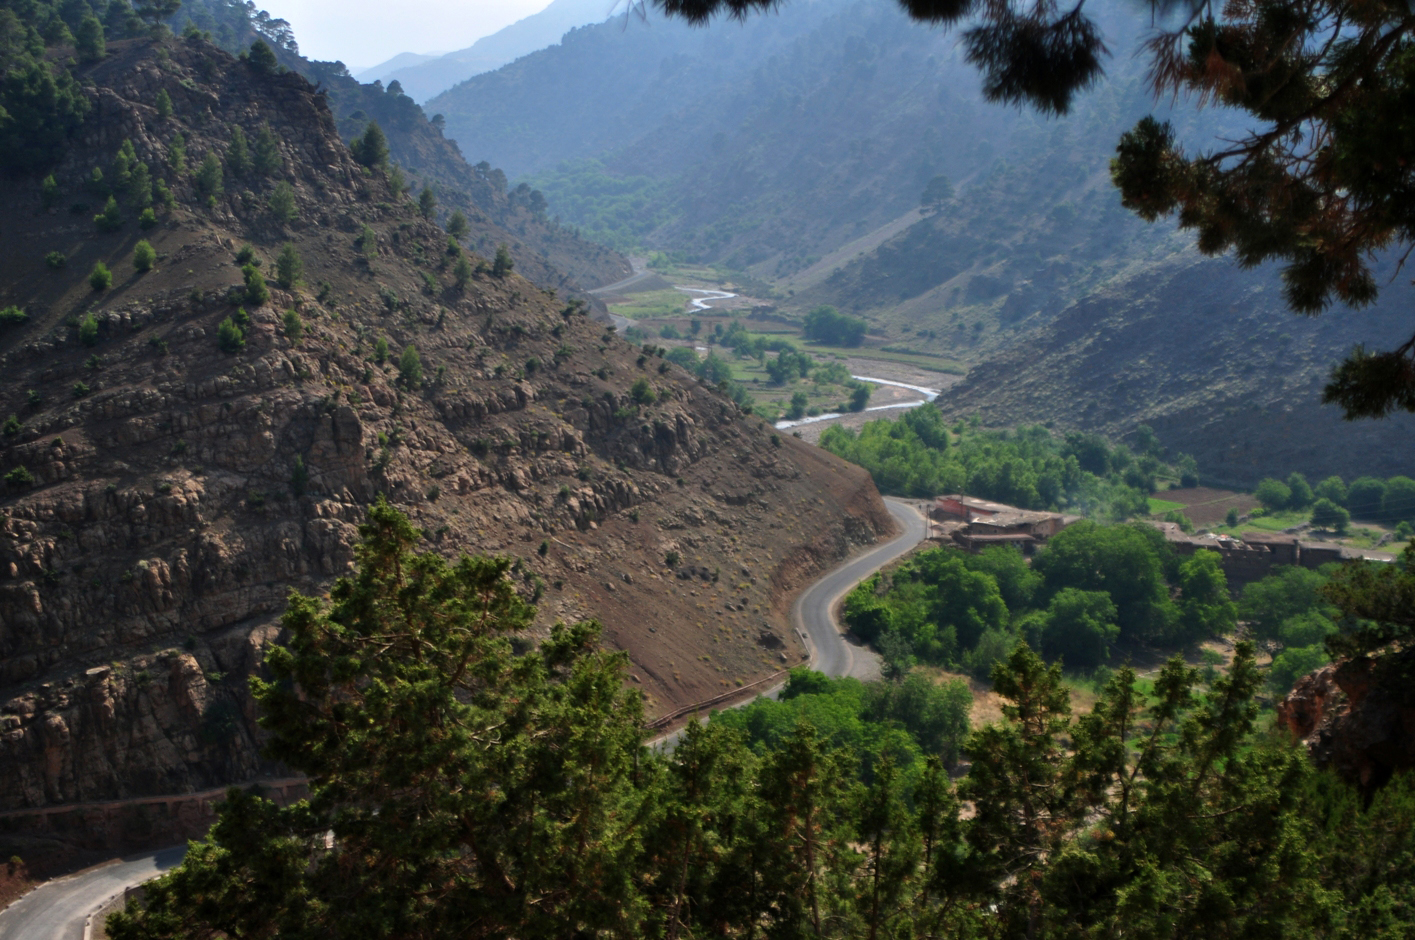 View of the Lakhdar Valley